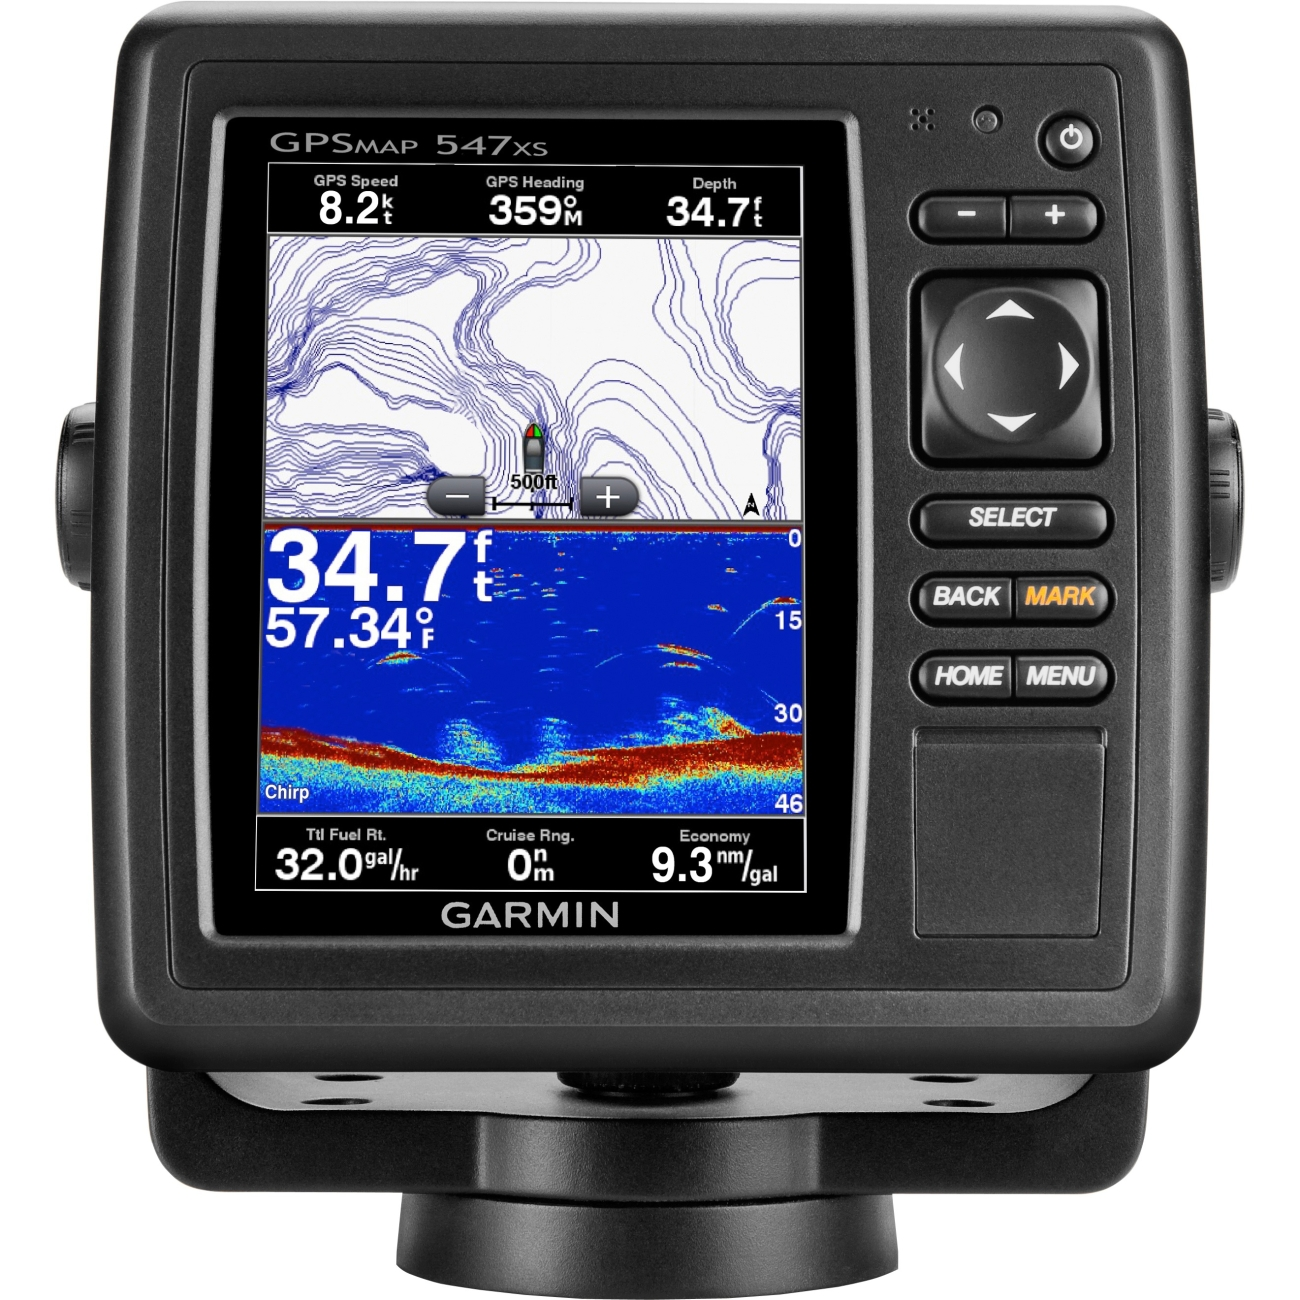 garmin gpsmap 547xs 010-01093-01 gps chartplotter/sounder combo, Fish Finder